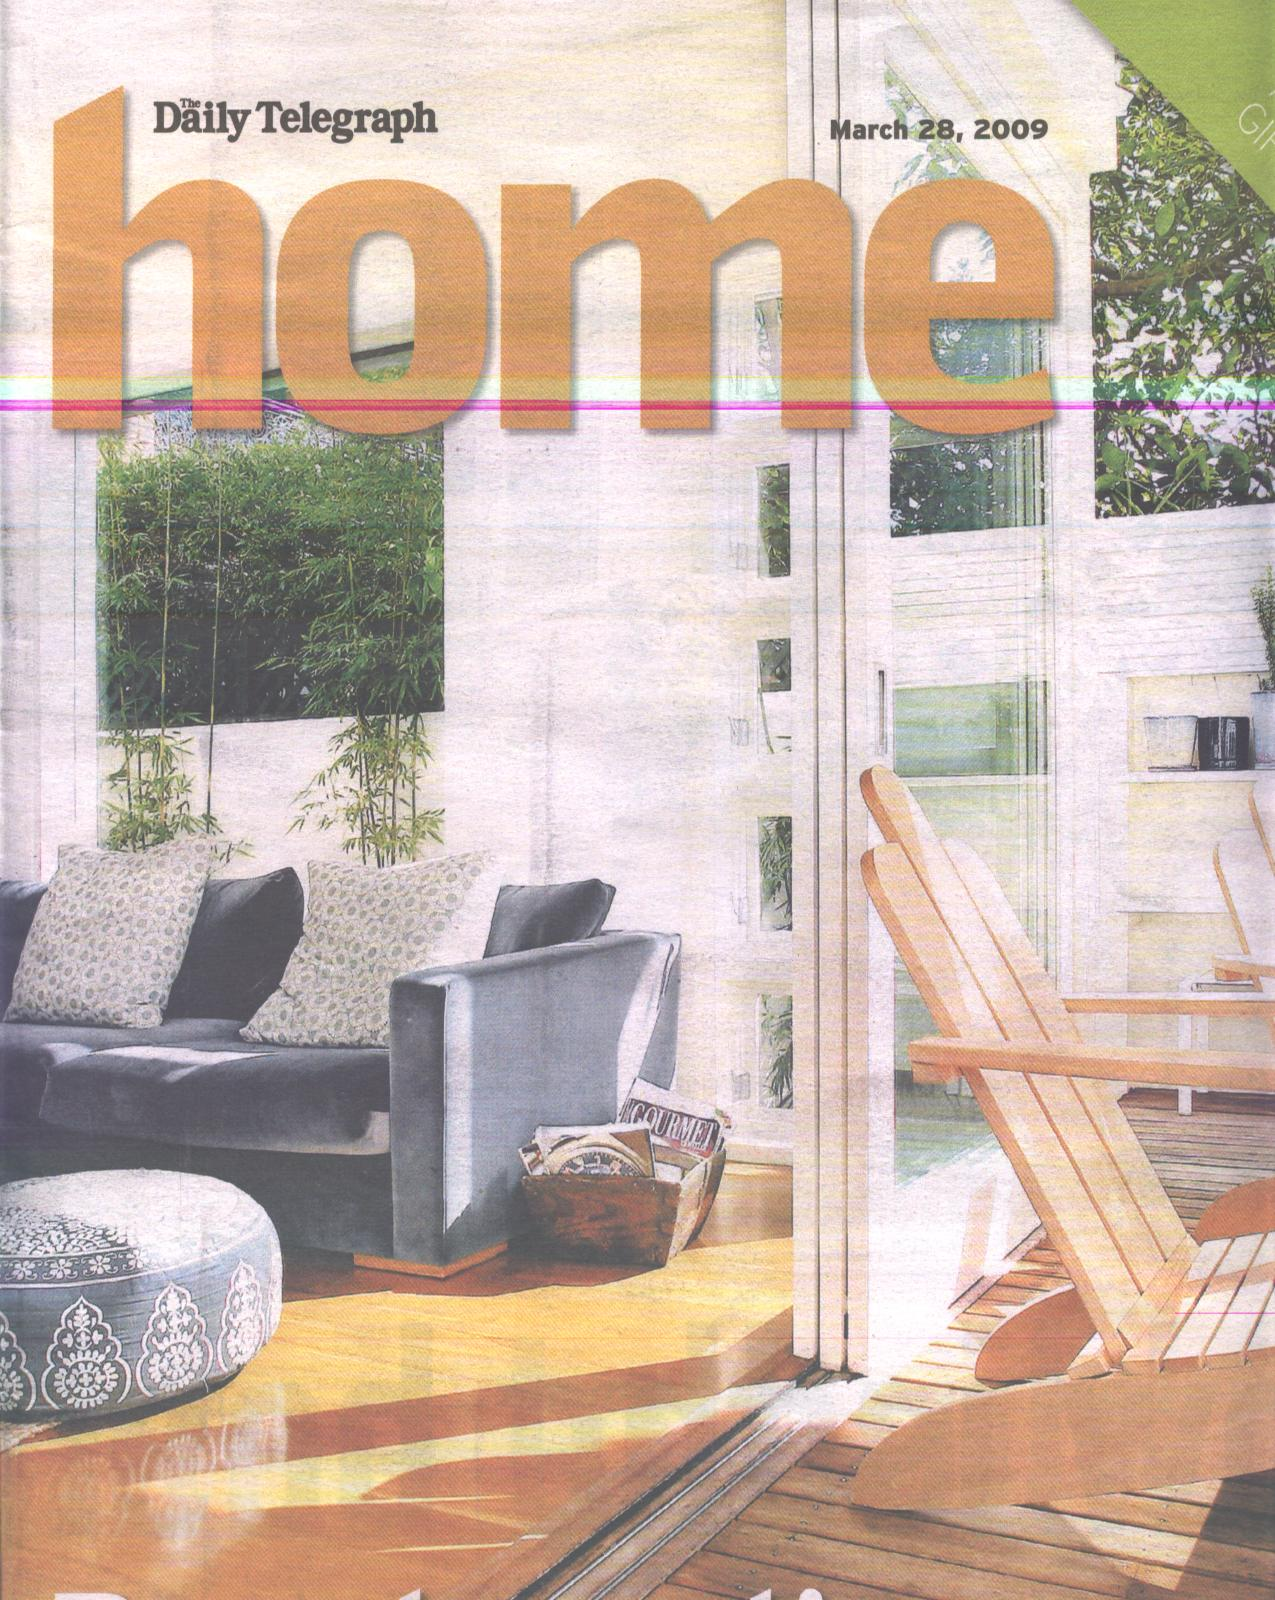 Daily Telegraph Home Magazine Archizen Architects New Home Development Narrow Difficult Small Site Architecture Sydney